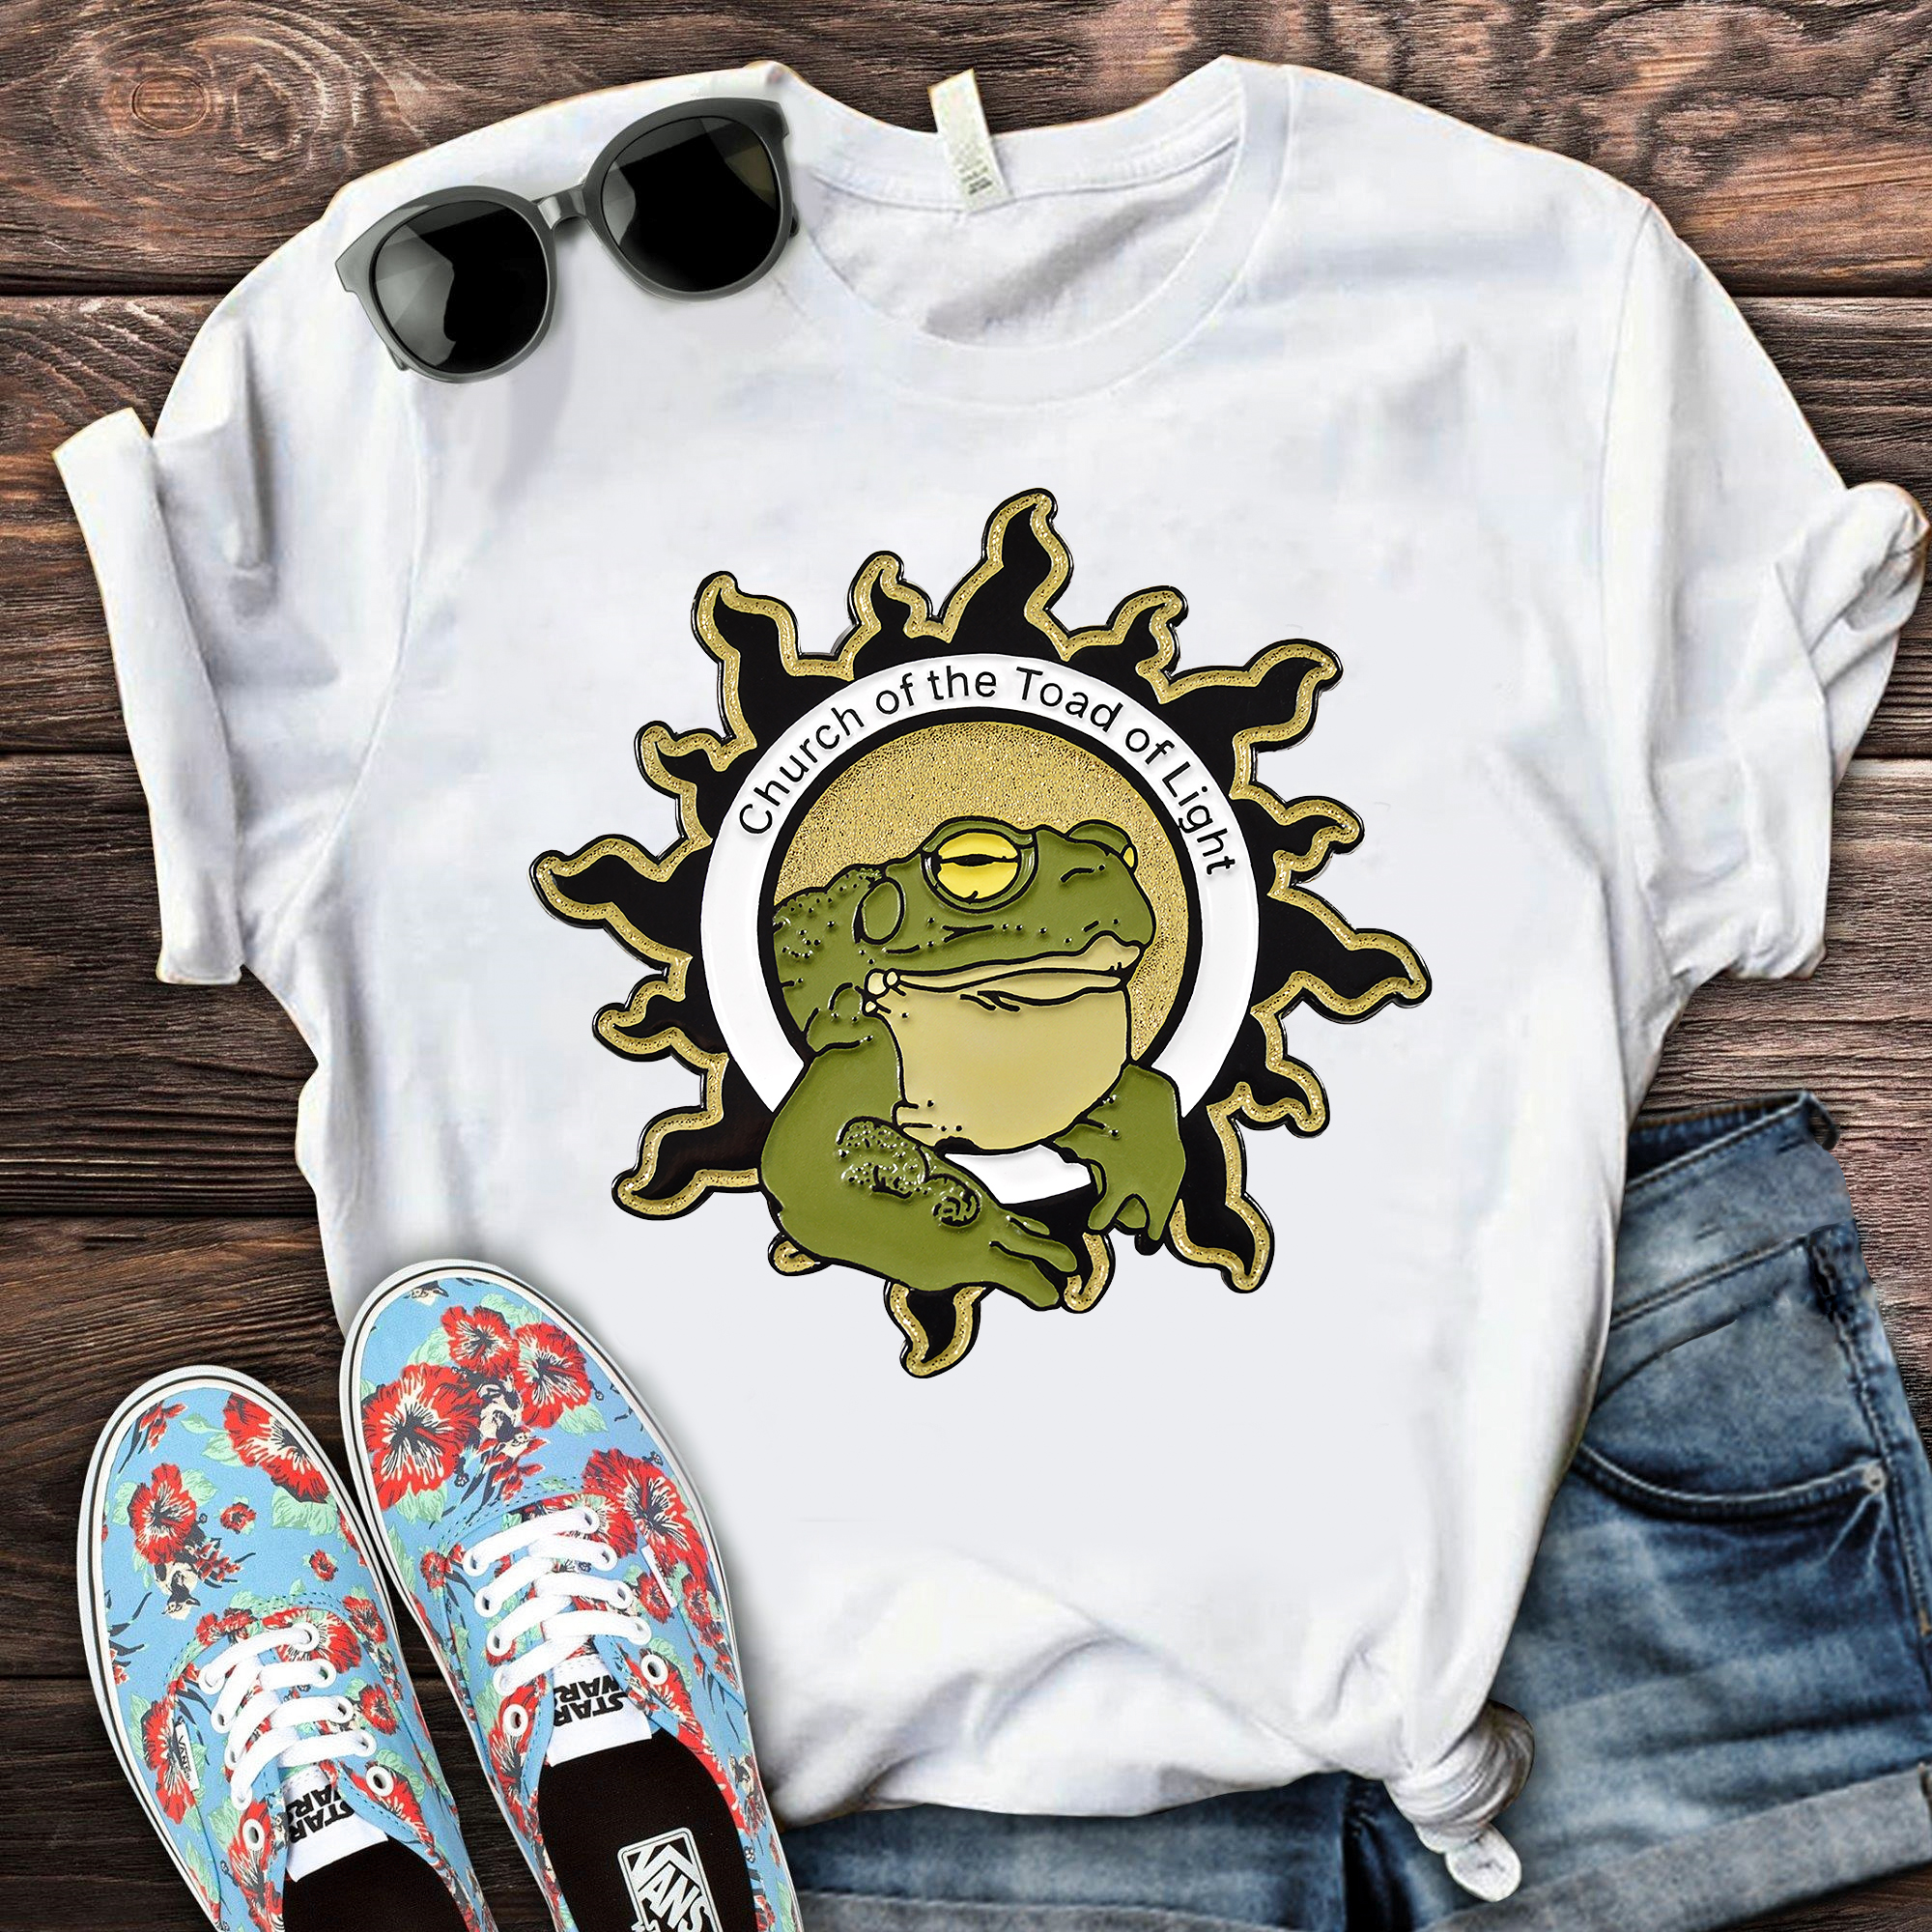 Psychedelic Toad Of The Sonoran Desert Shirt Church Of The Toad